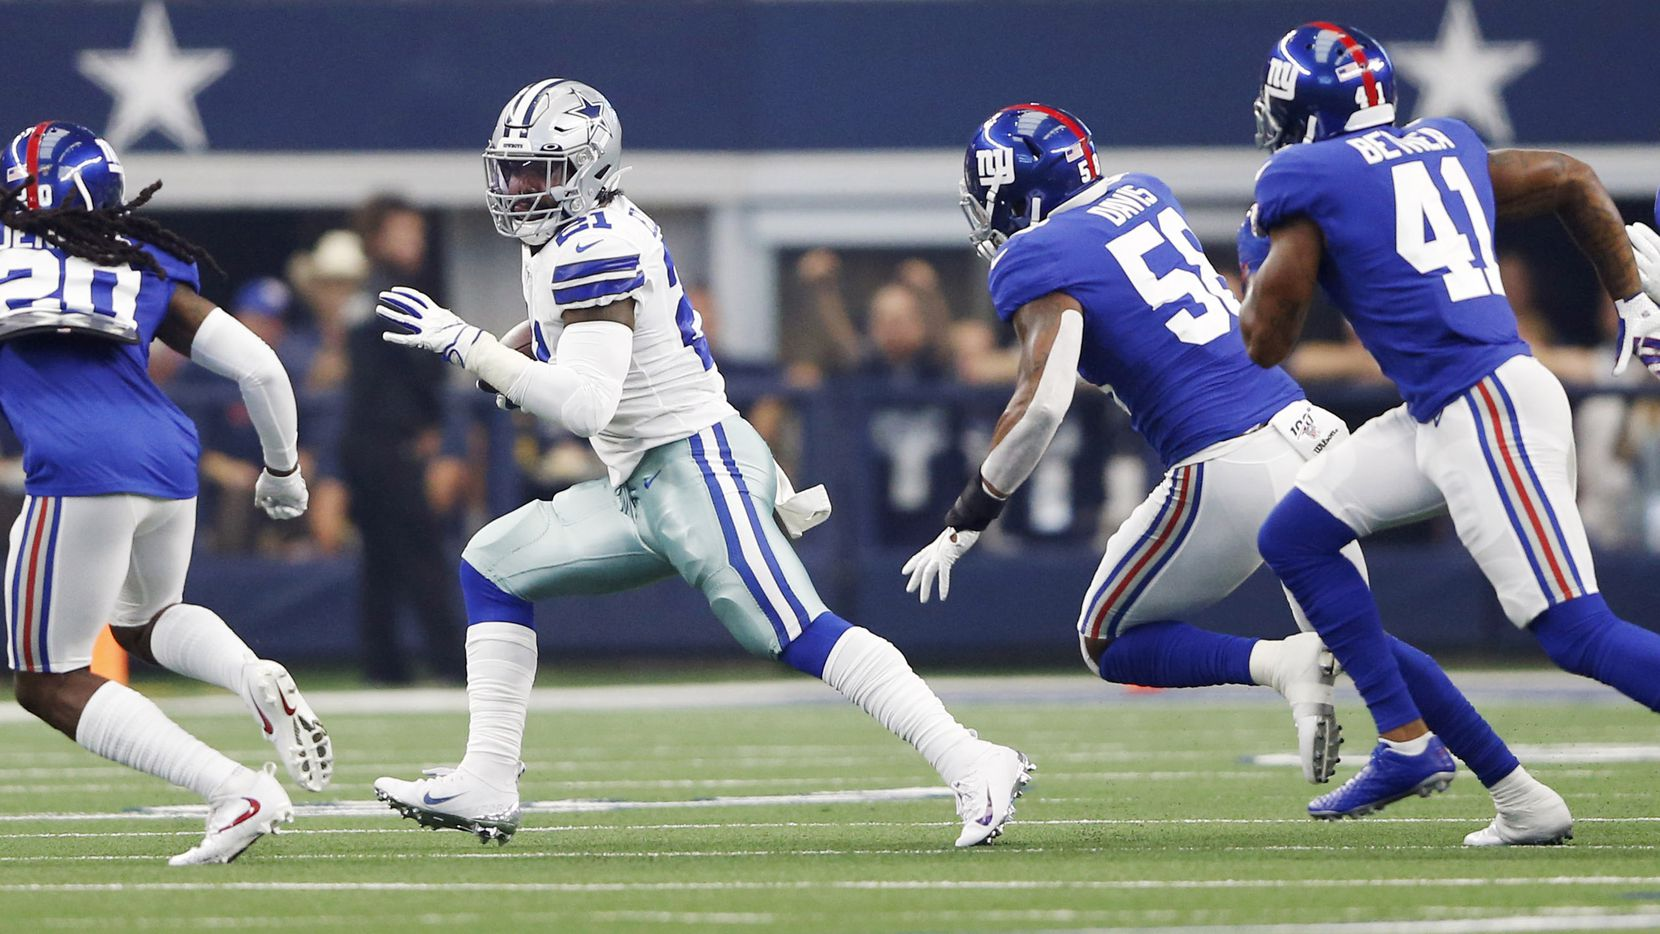 Dallas Cowboys running back Ezekiel Elliott (21) rushes up the field as New York Giants cornerback Janoris Jenkins (20) and New York Giants linebacker Tae Davis (58) chase him during the first half of play in the home opener between the Dallas Cowboys and New York Giants at AT&T Stadium in Arlington, Texas, on Sunday, September 8, 2019.